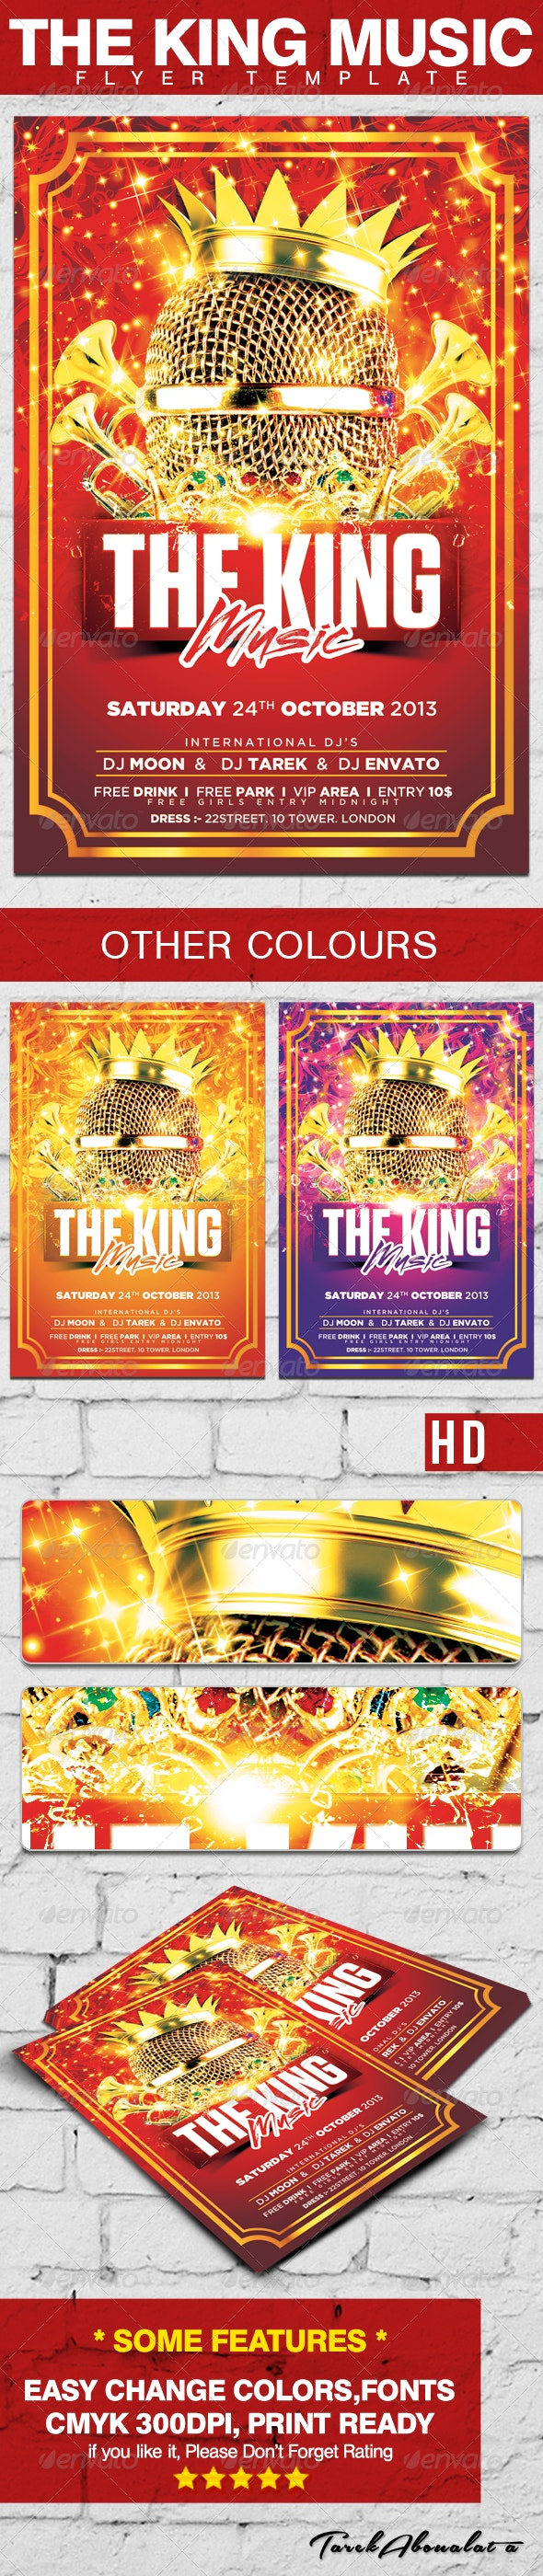 The King Music Flyer Template - Clubs & Parties Events